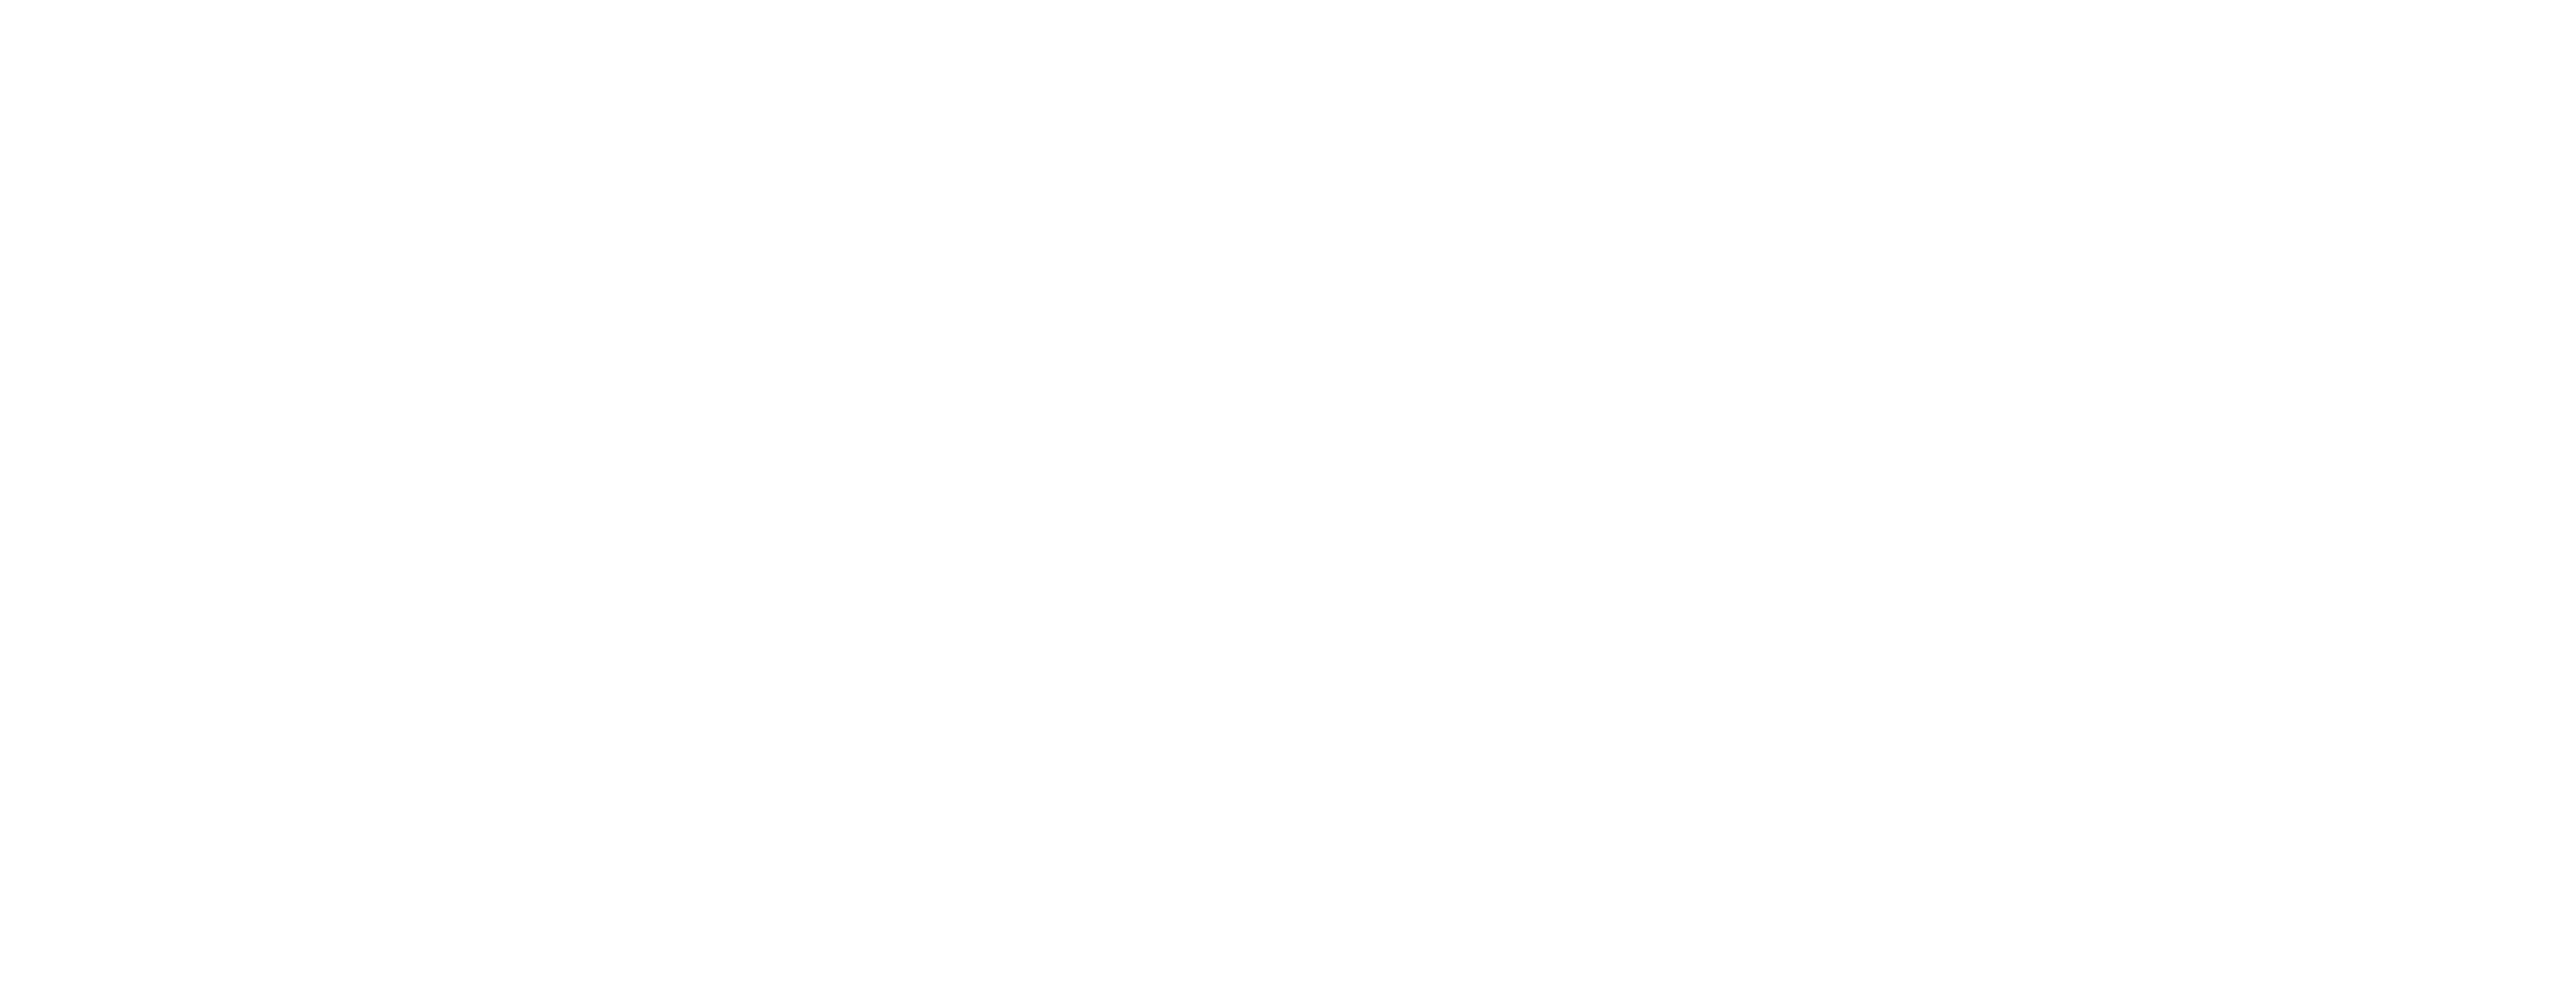 Mr America Training Camp Logo